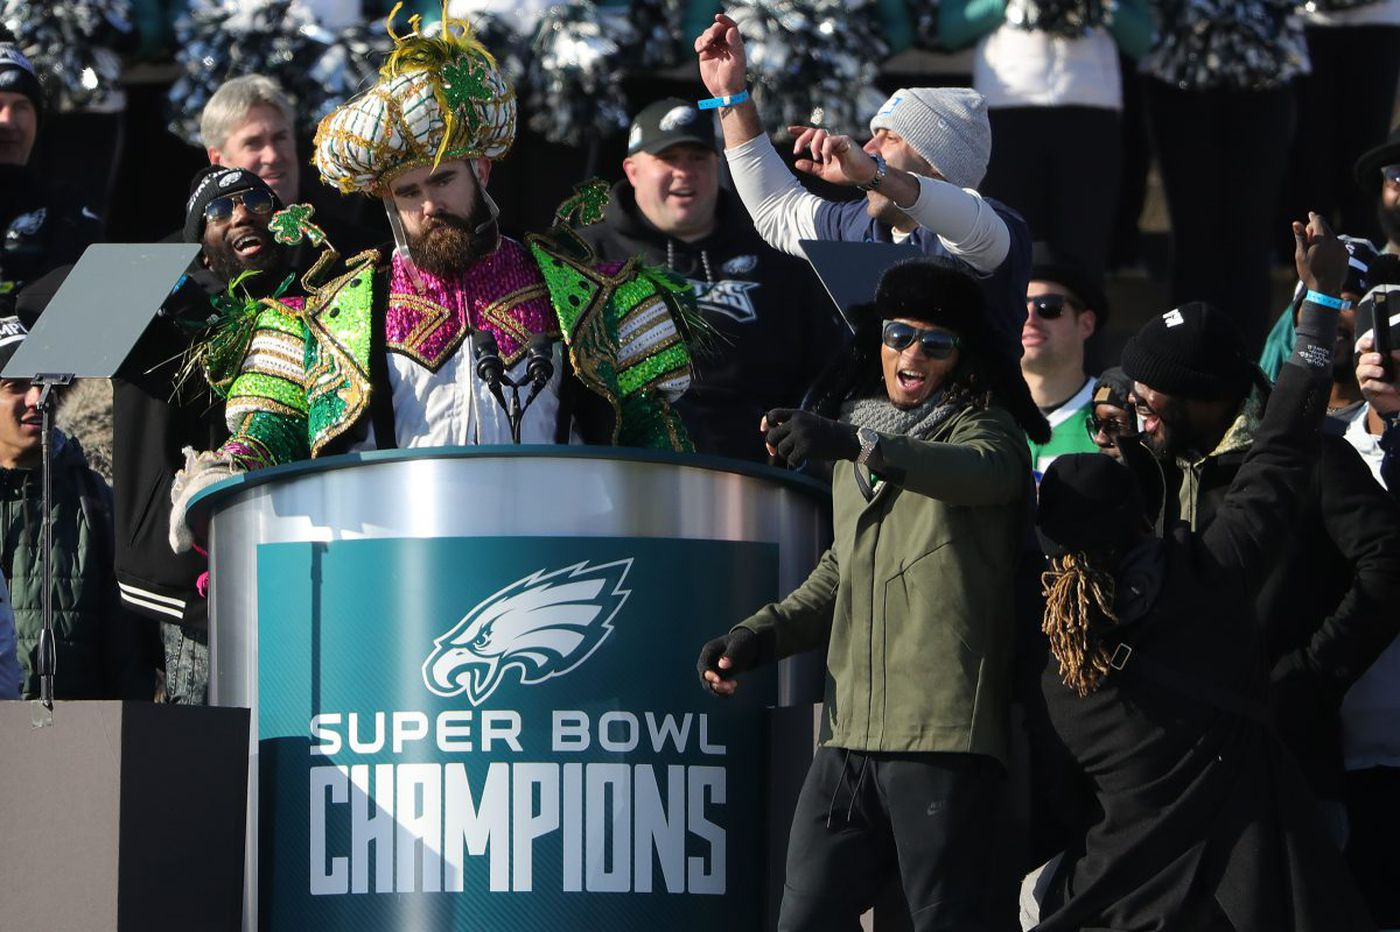 Jason Kelce's Super Bowl parade speech: Full transcript